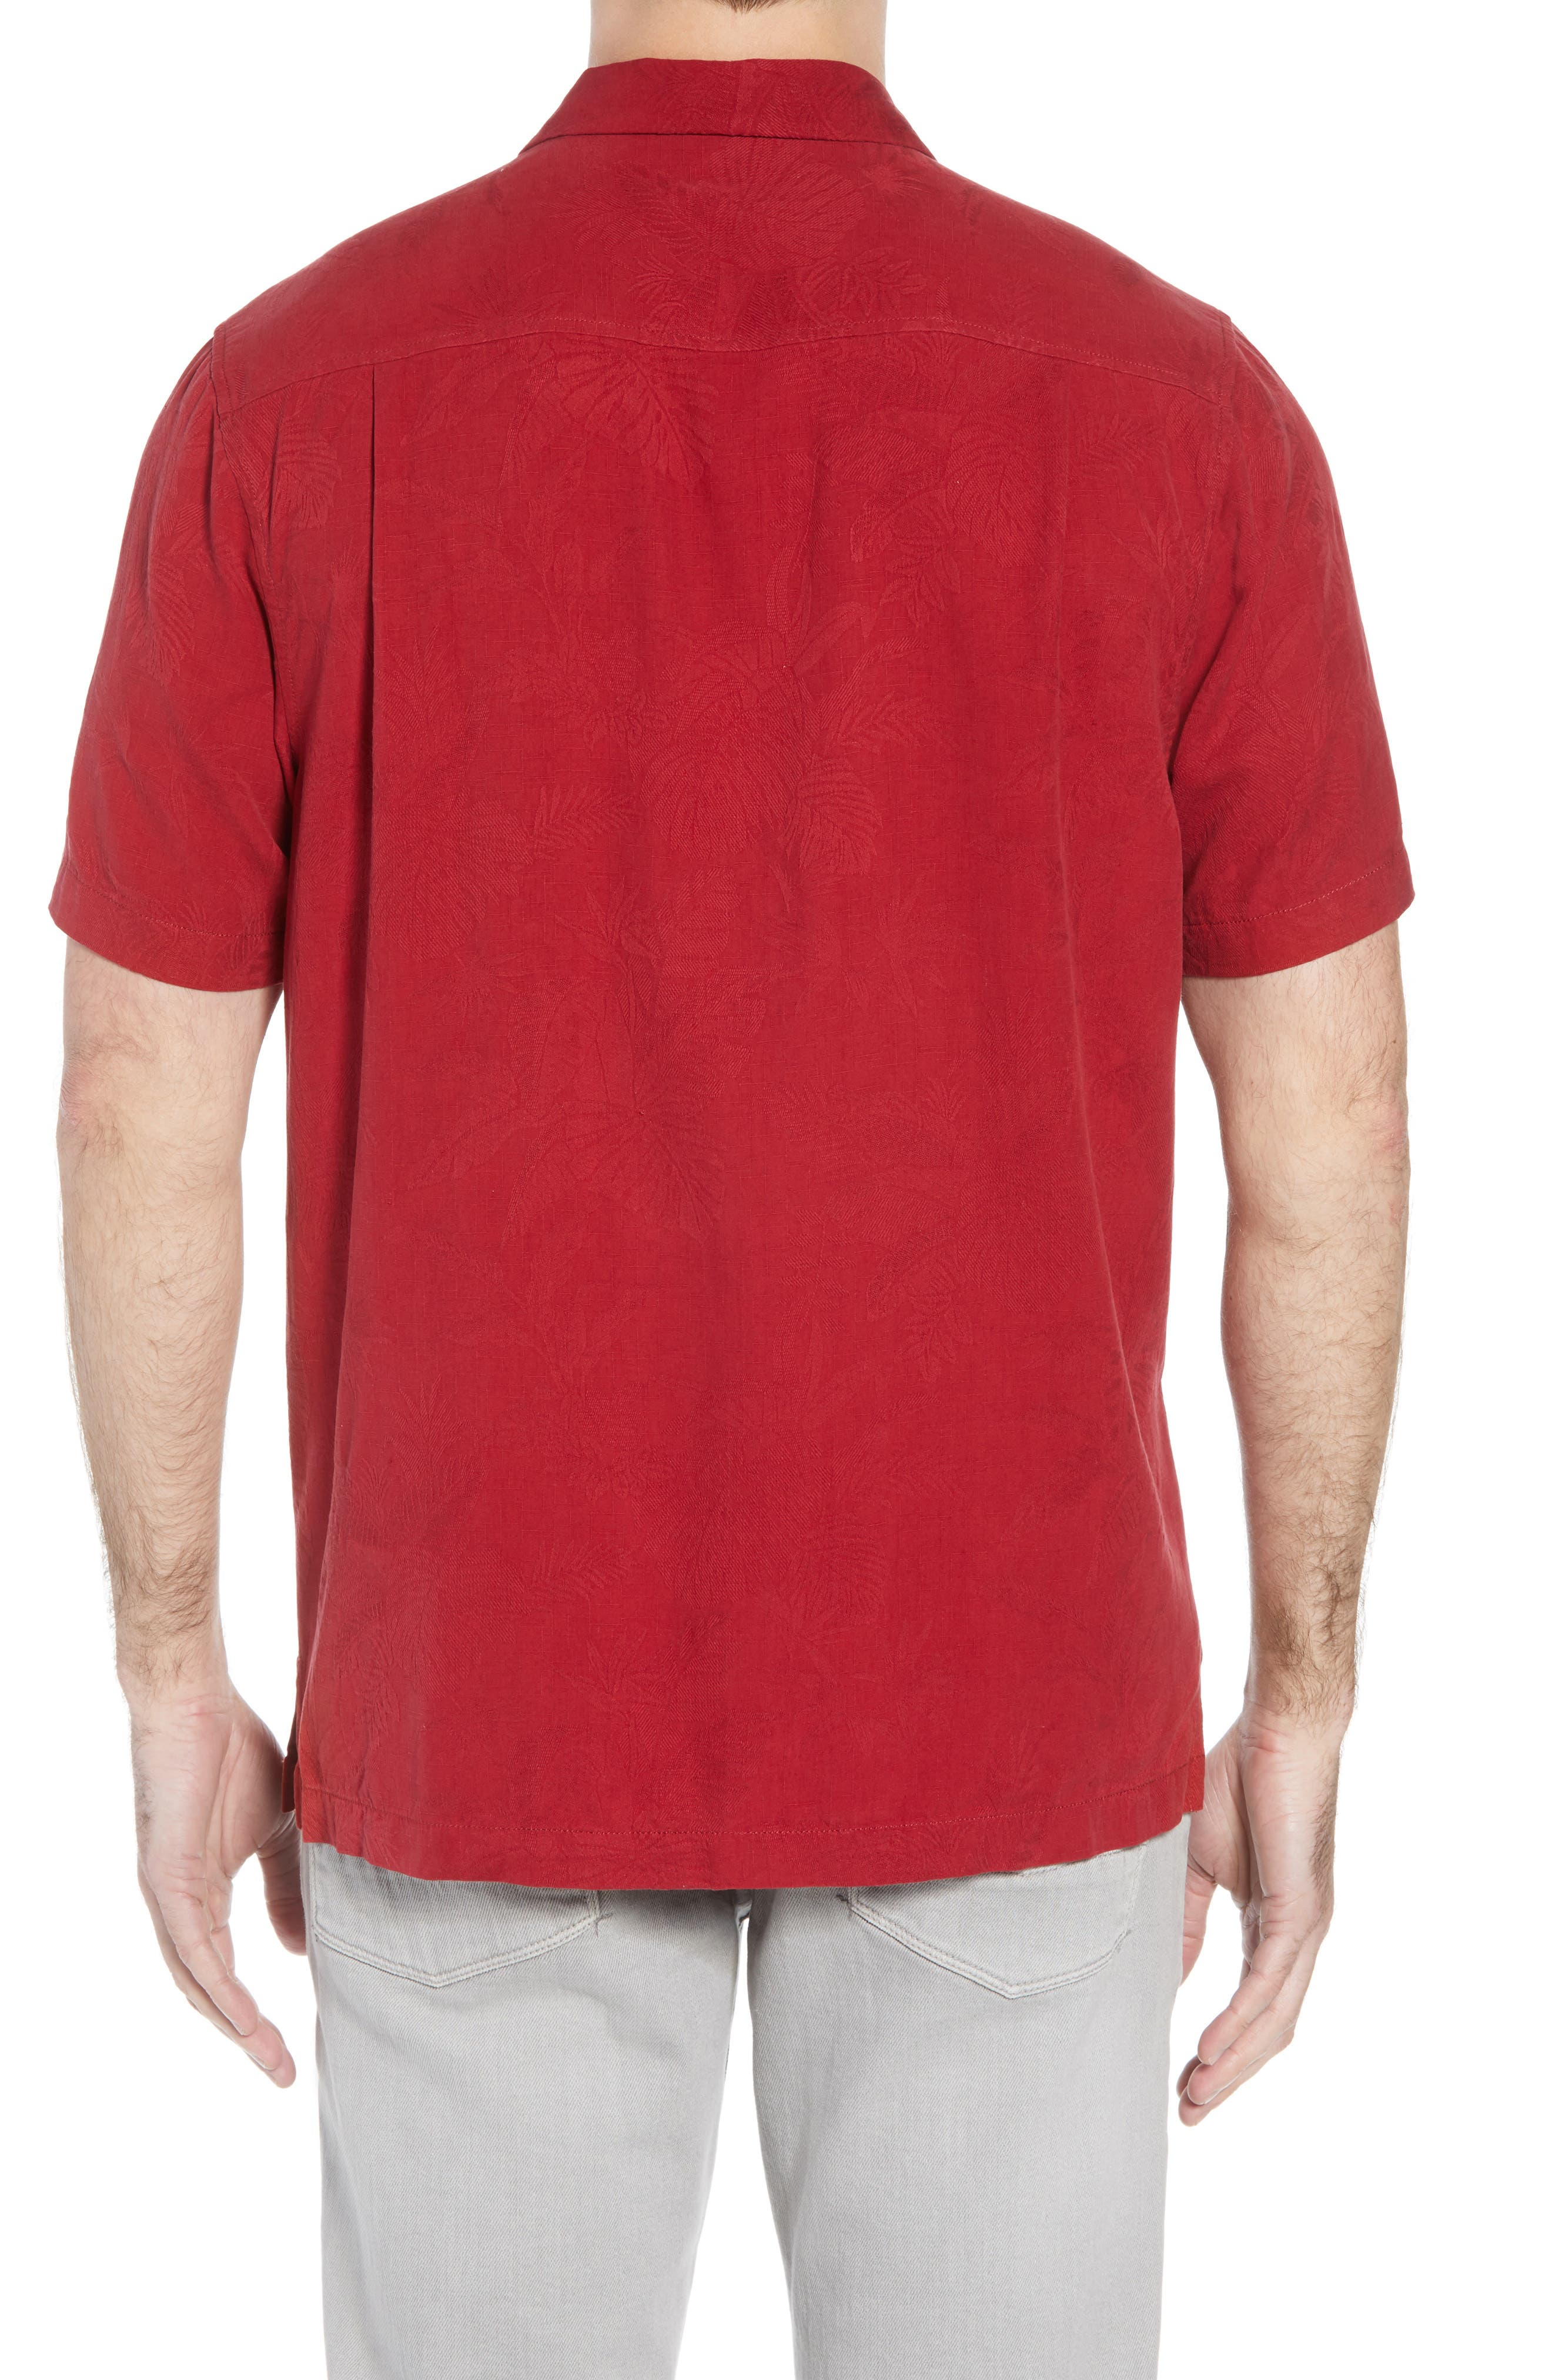 St Lucia Fronds Silk Camp Shirt,                             Alternate thumbnail 3, color,                             RED/ PLUM RAISIN